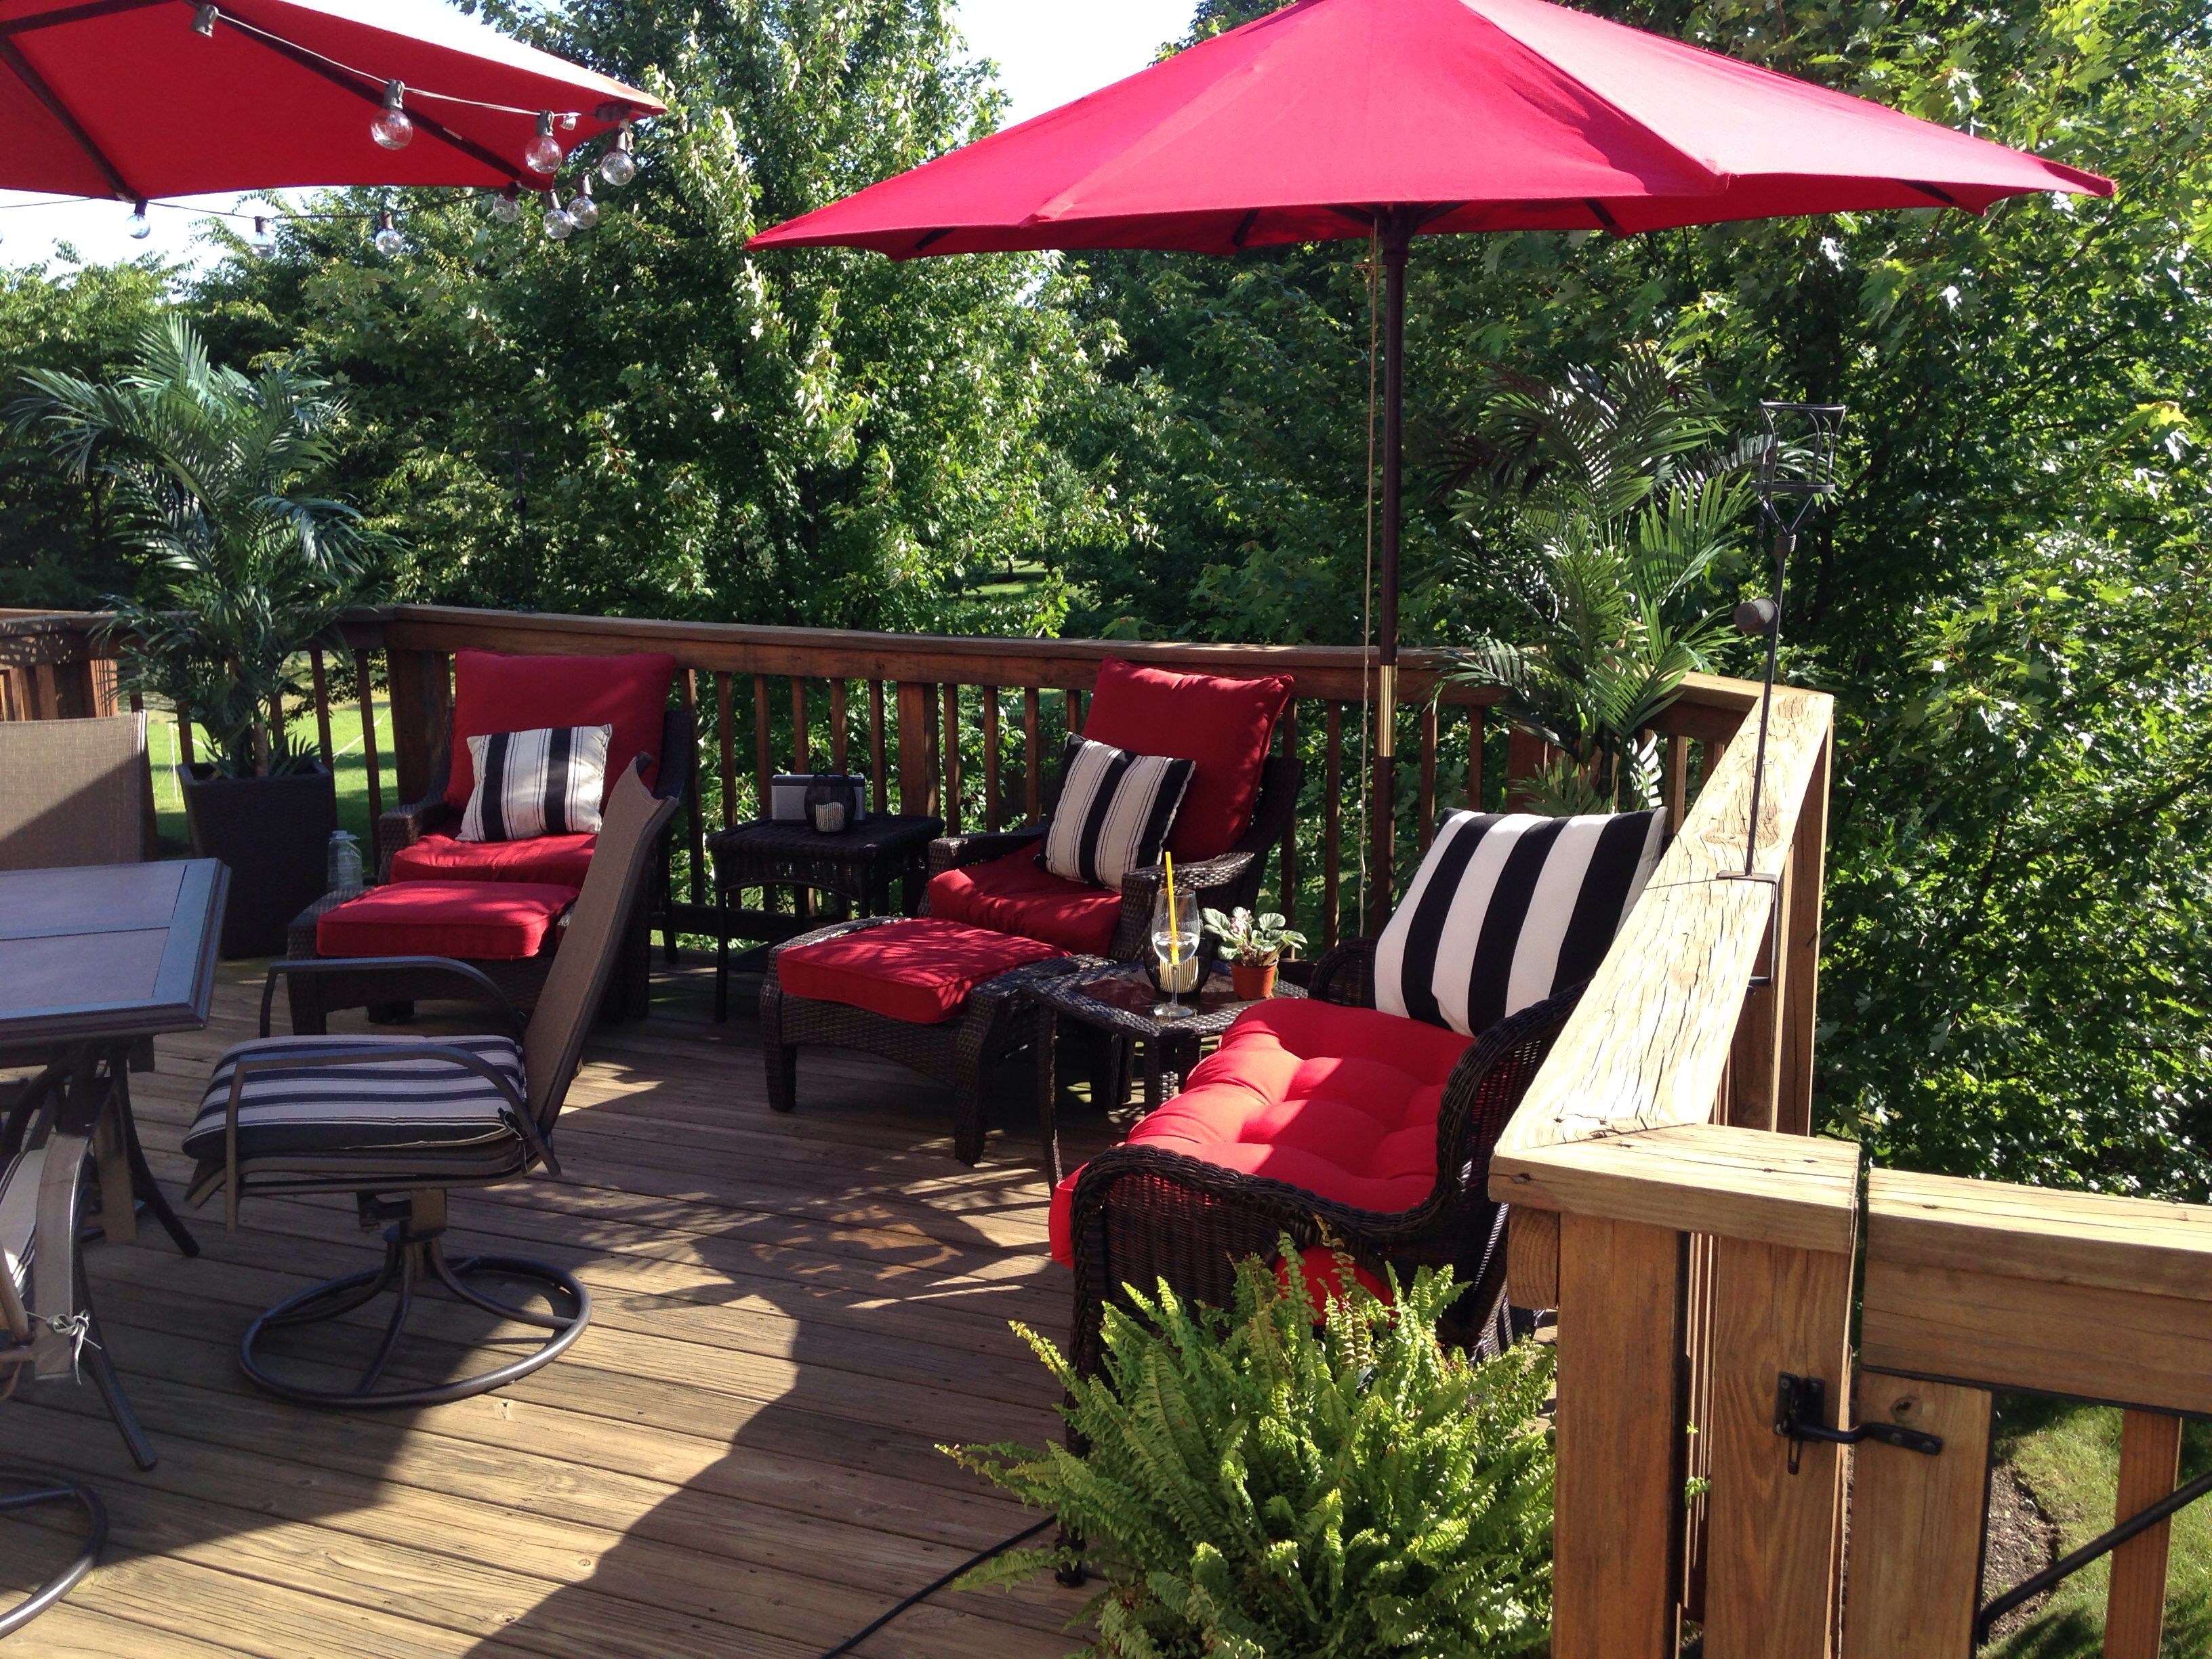 Red Outdoor Chair Pillows High Floor Mat Target Patio Furniture Cushions With Black And White Striped